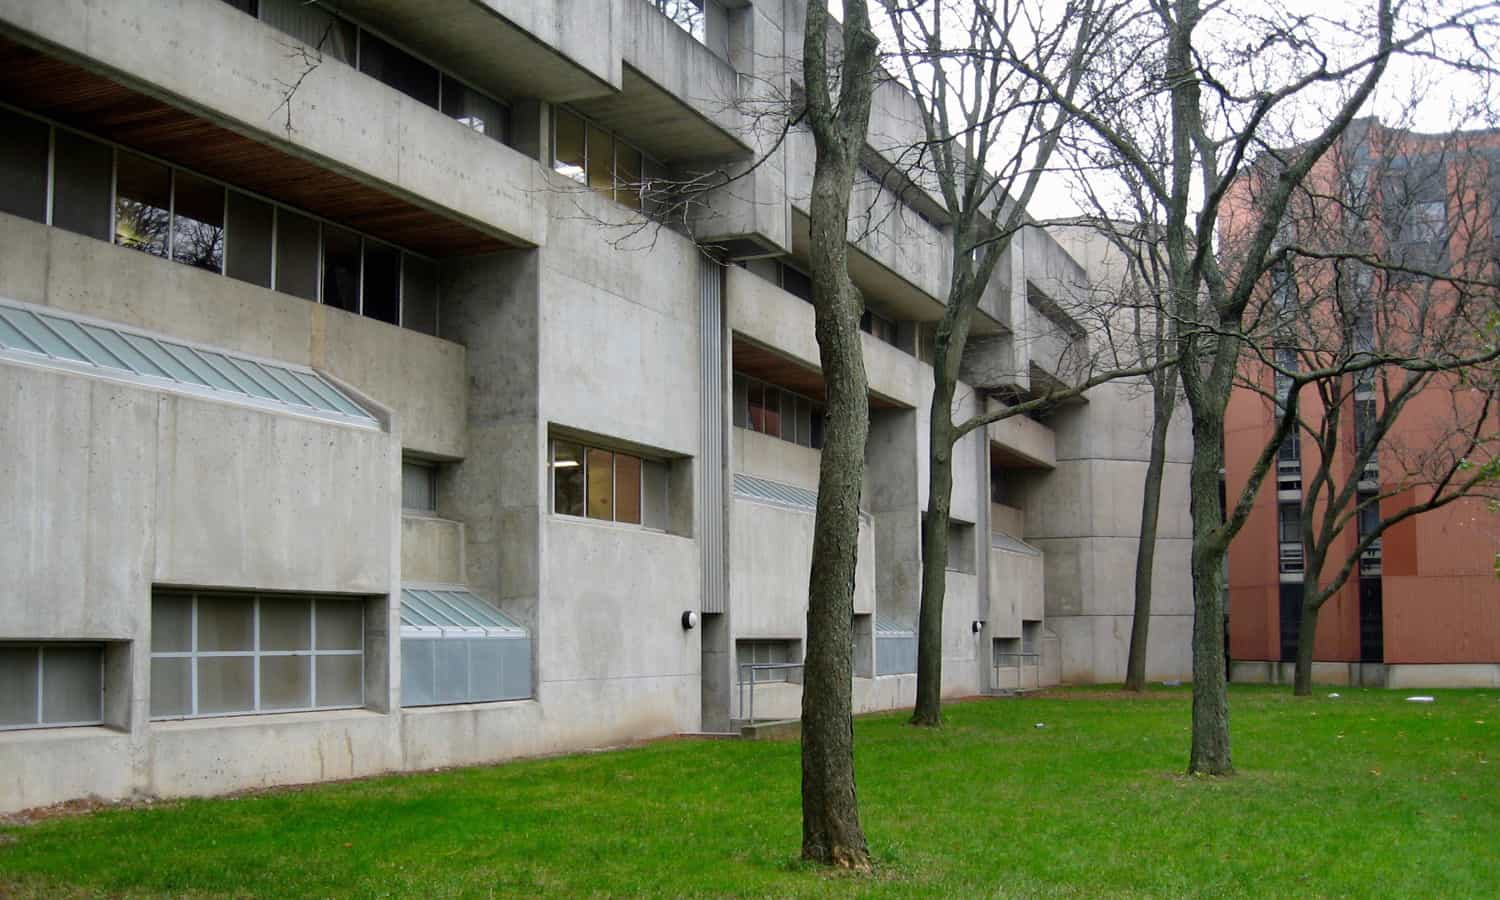 Exterior focusing on the concrete elevations